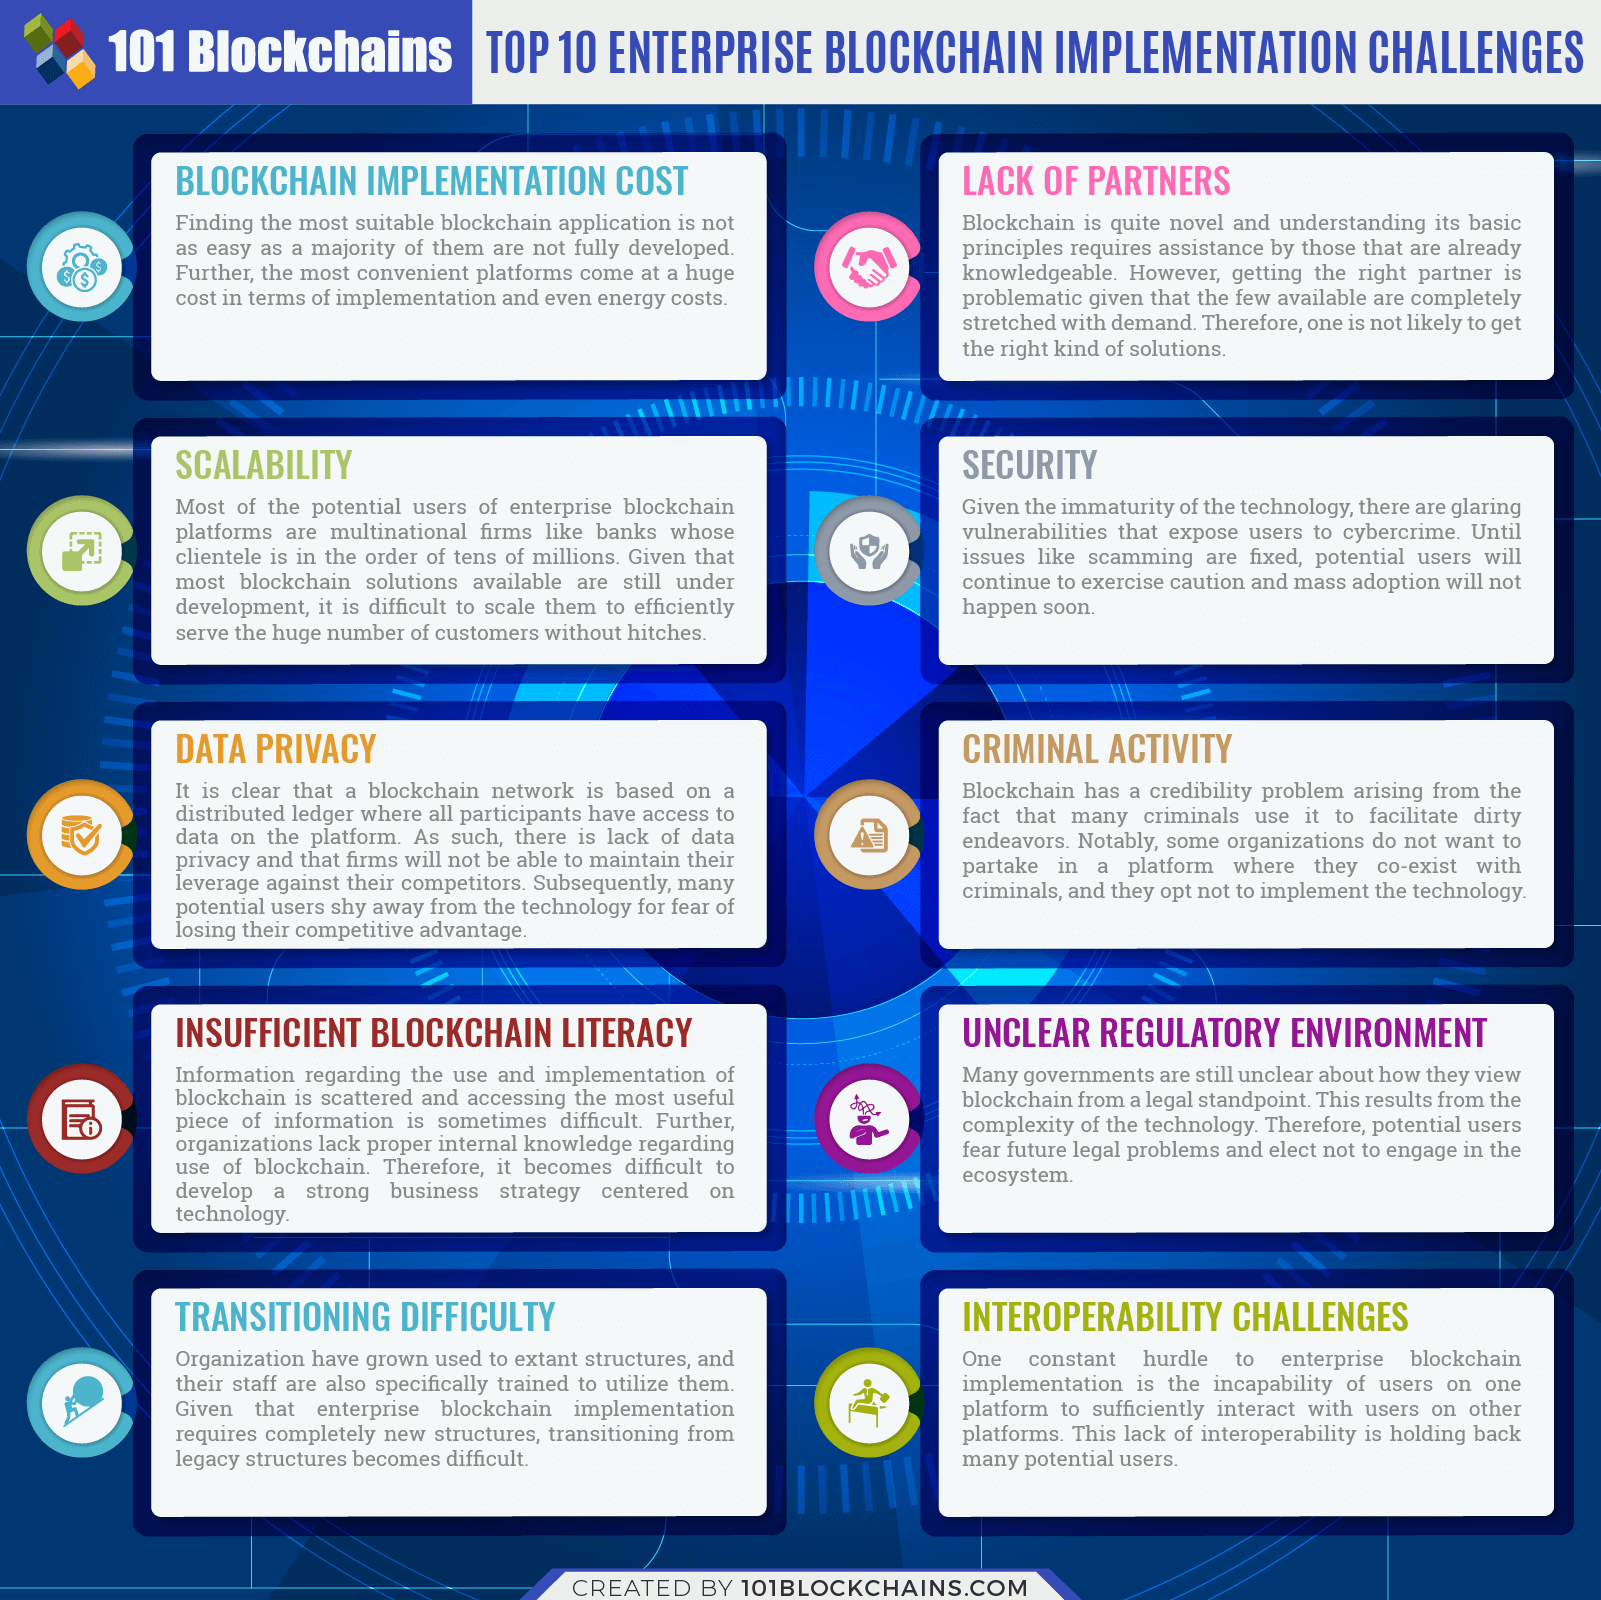 Top 10 Enterprise Blockchain Implementation Challenges